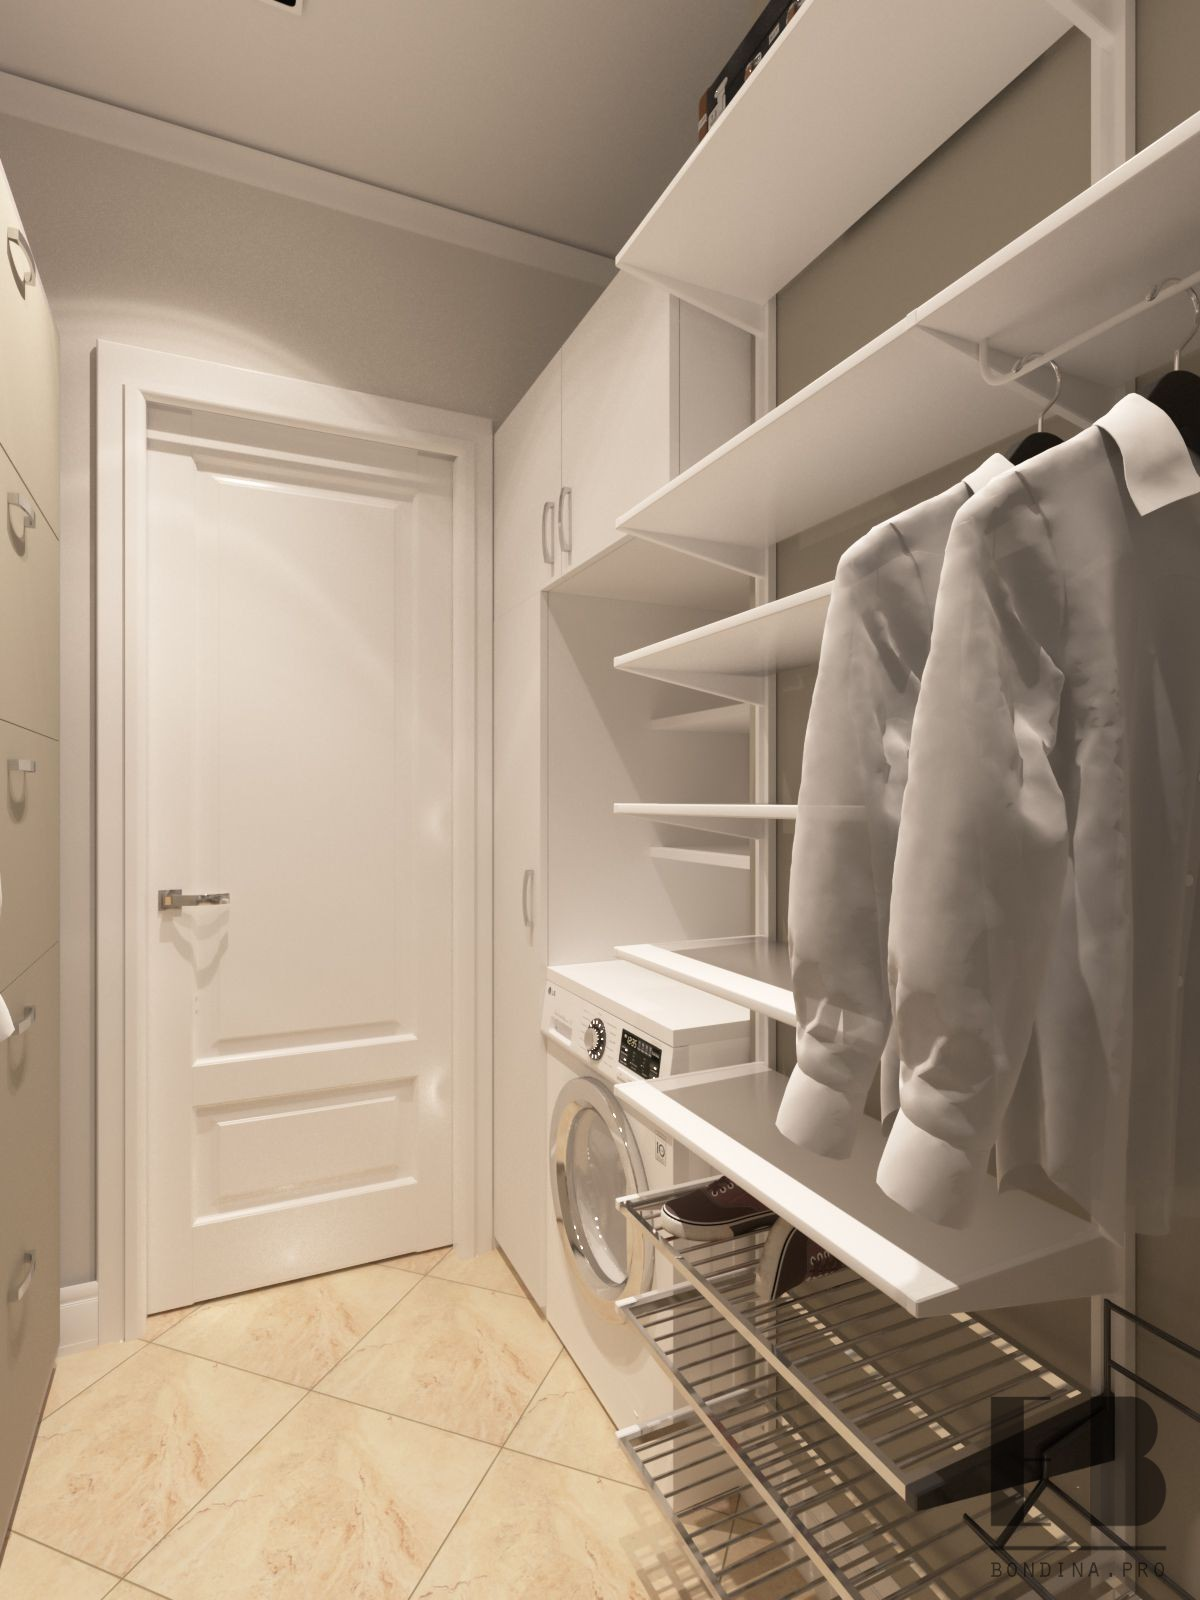 Wardrobe in white colors design